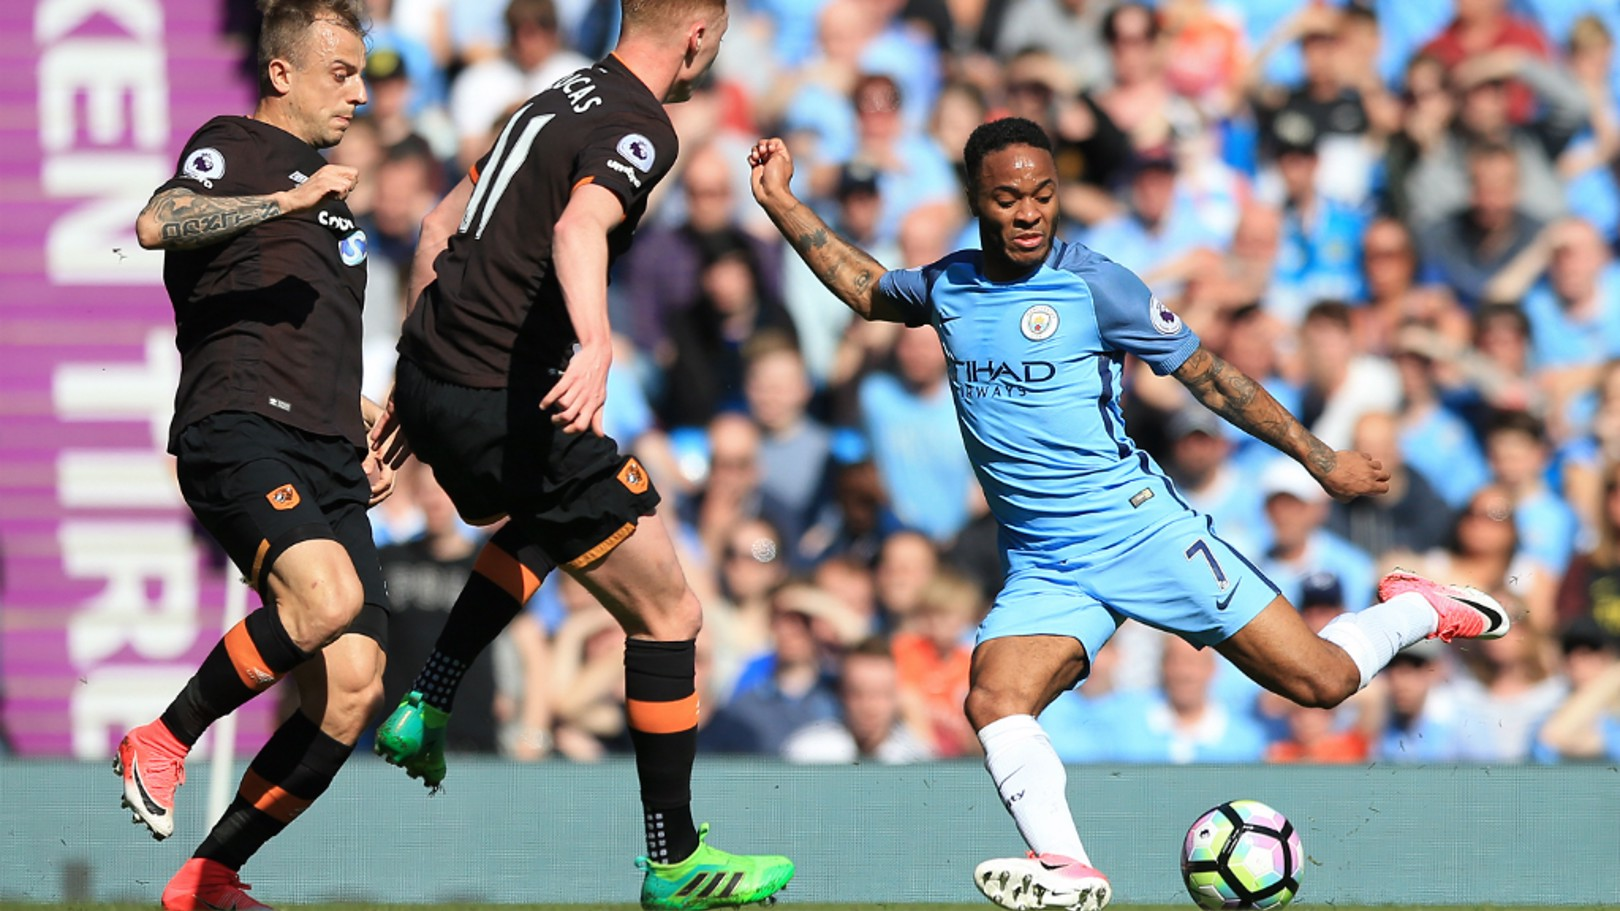 FLYING WINGER: Raheem tries to break into the Hull area in the first half.